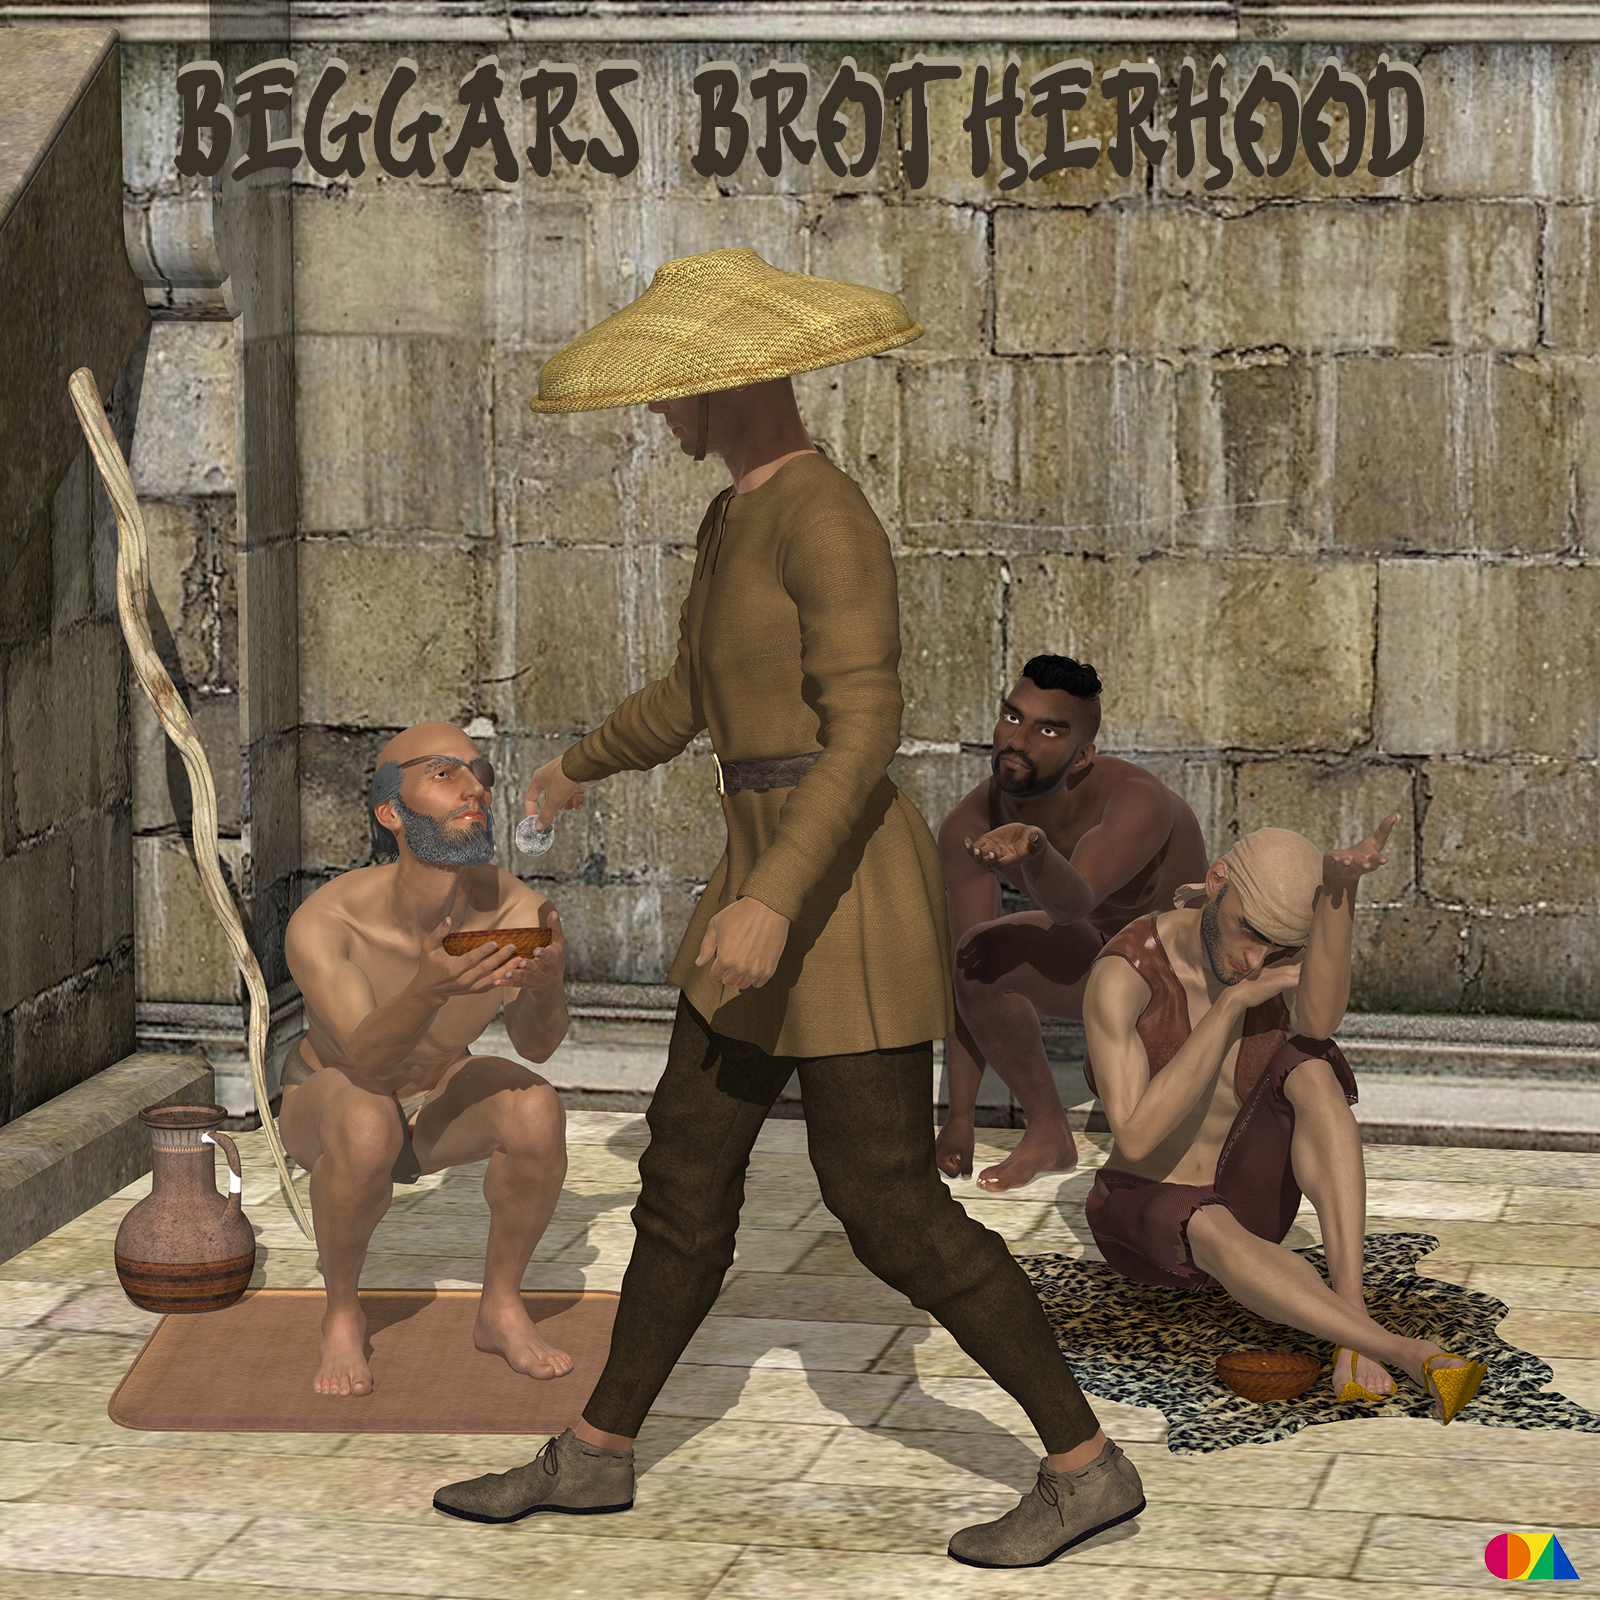 Beggars Brotherhood